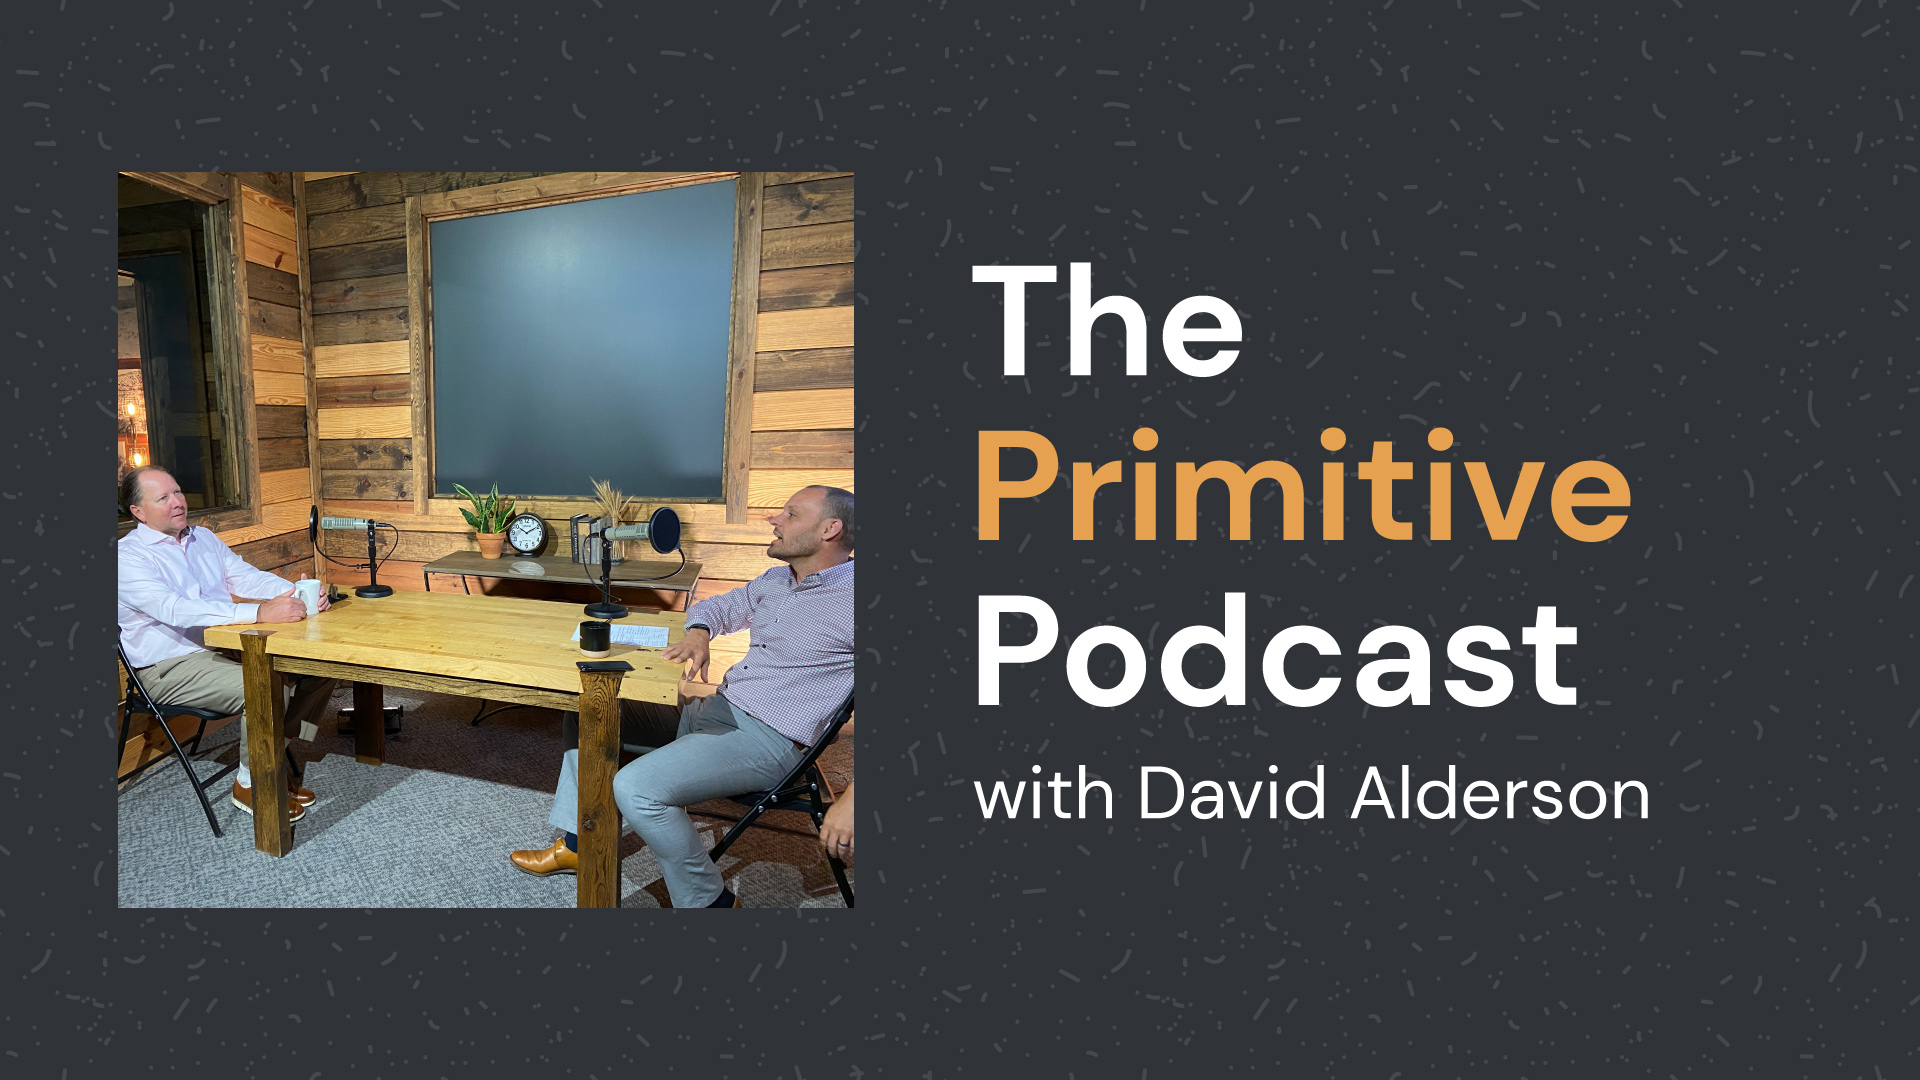 The Primitive Podcast with David Alderson